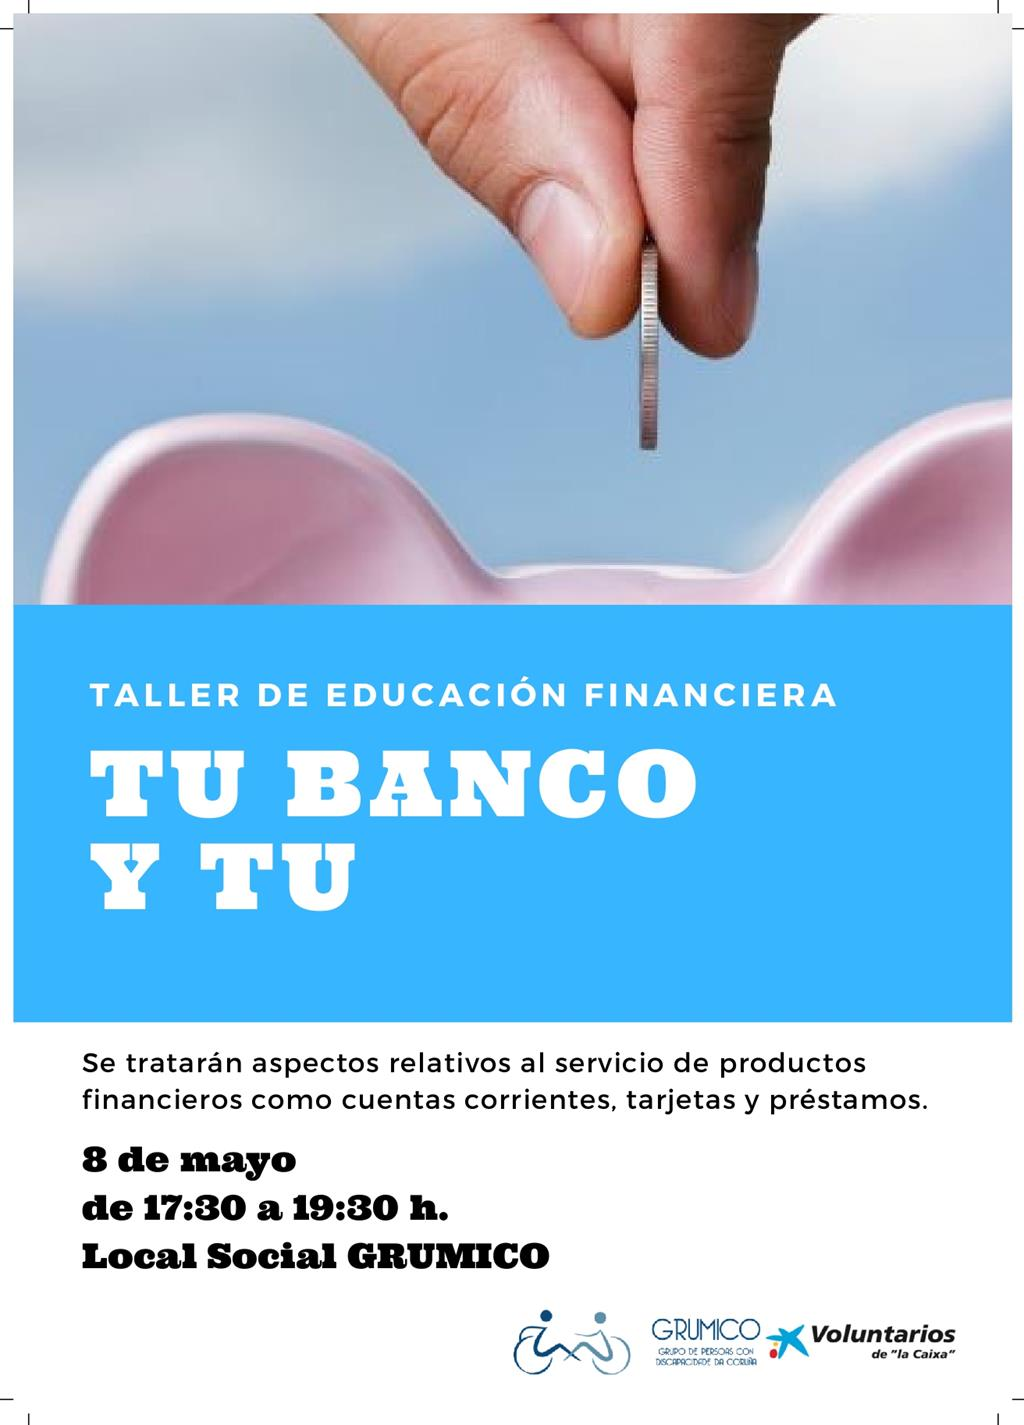 Grumico organiza 2ª parteo do curso Educación Financiera